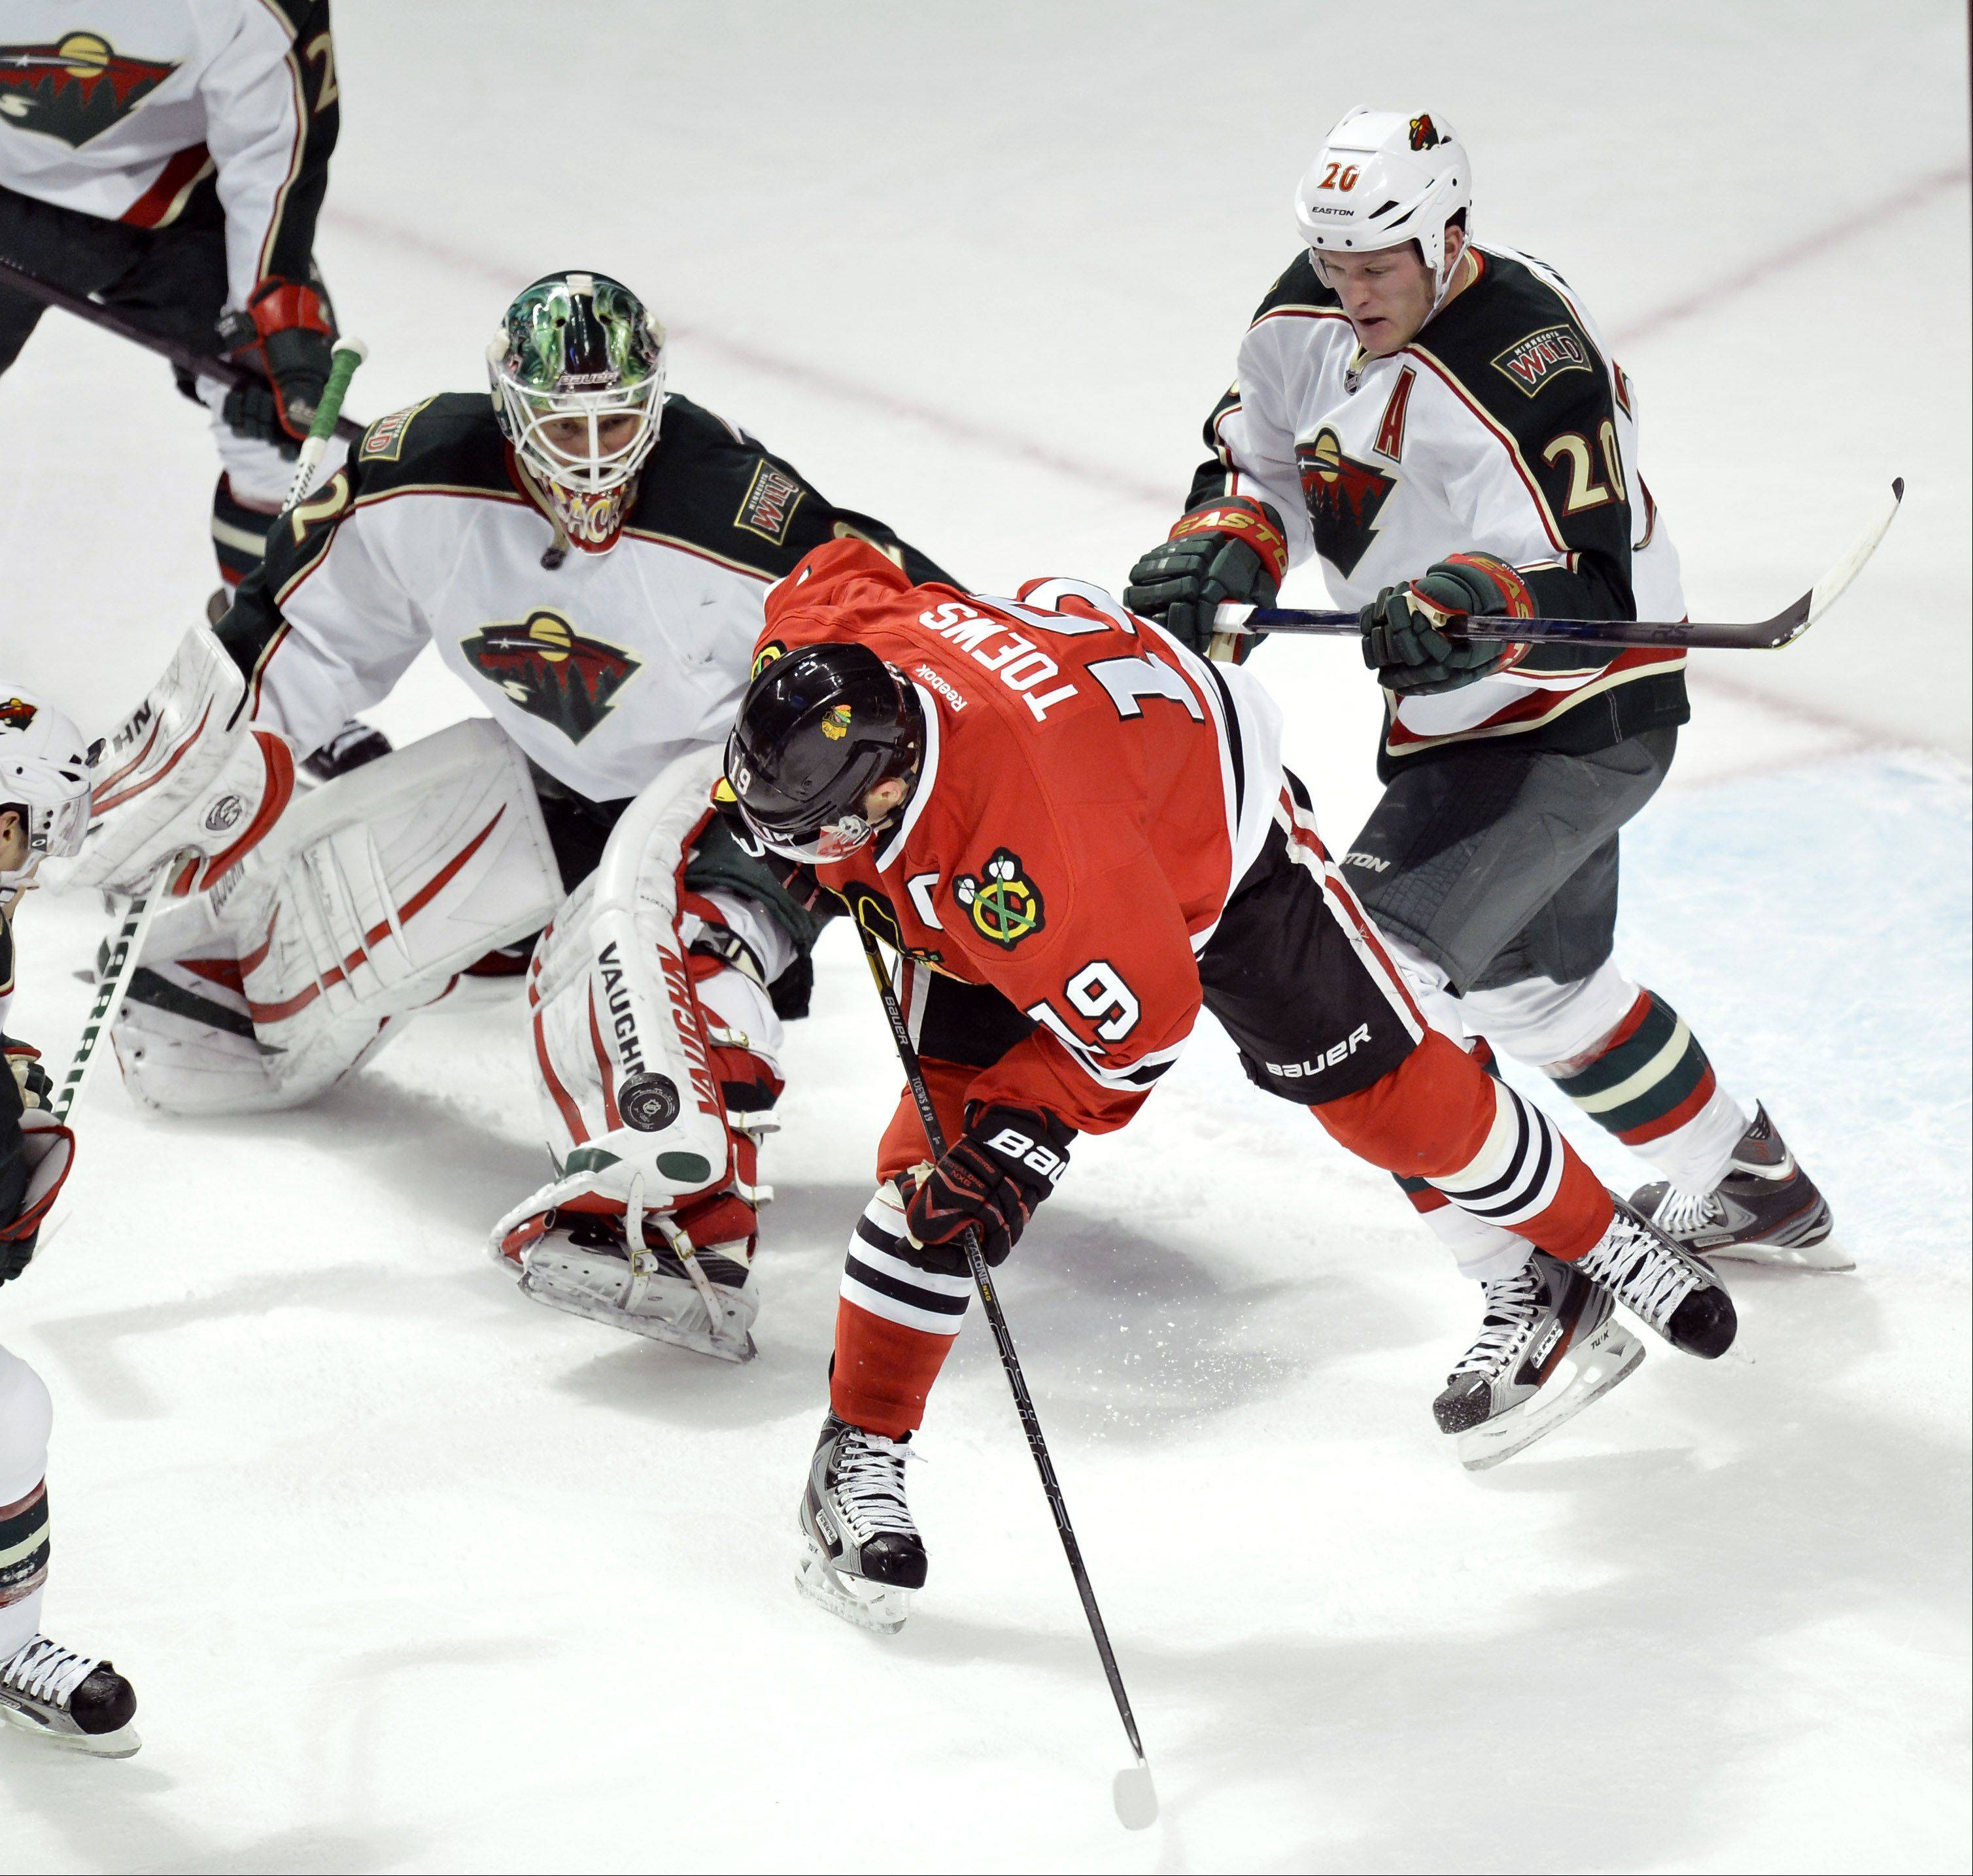 Chicago Blackhawks center Jonathan Toews, center, tries to score as Minnesota Wild goalie Niklas Backstrom of Finland, left, and defenseman Ryan Suter defend during the first period.